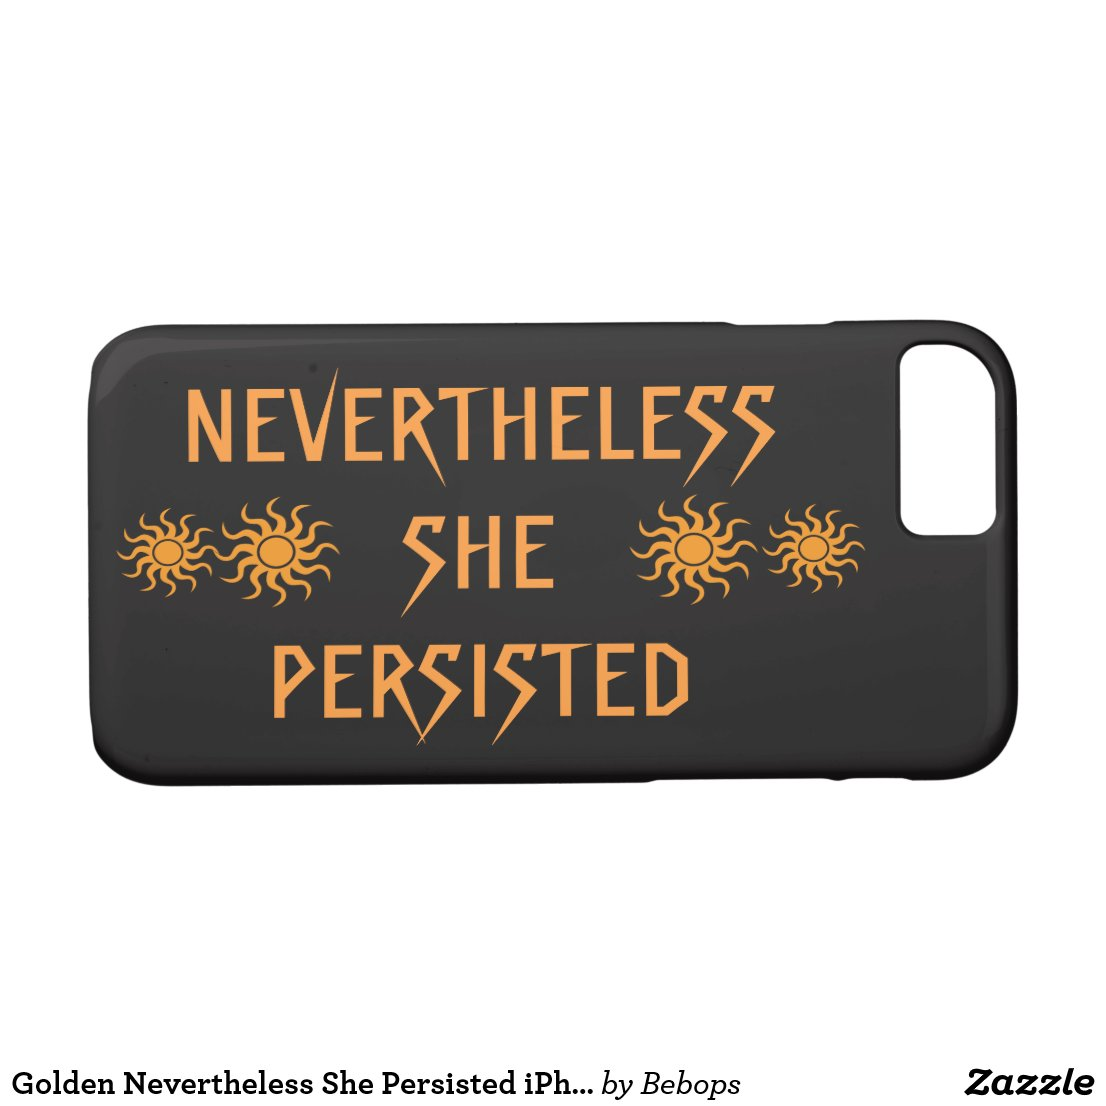 Golden Nevertheless She Persisted iPhone 7 Case